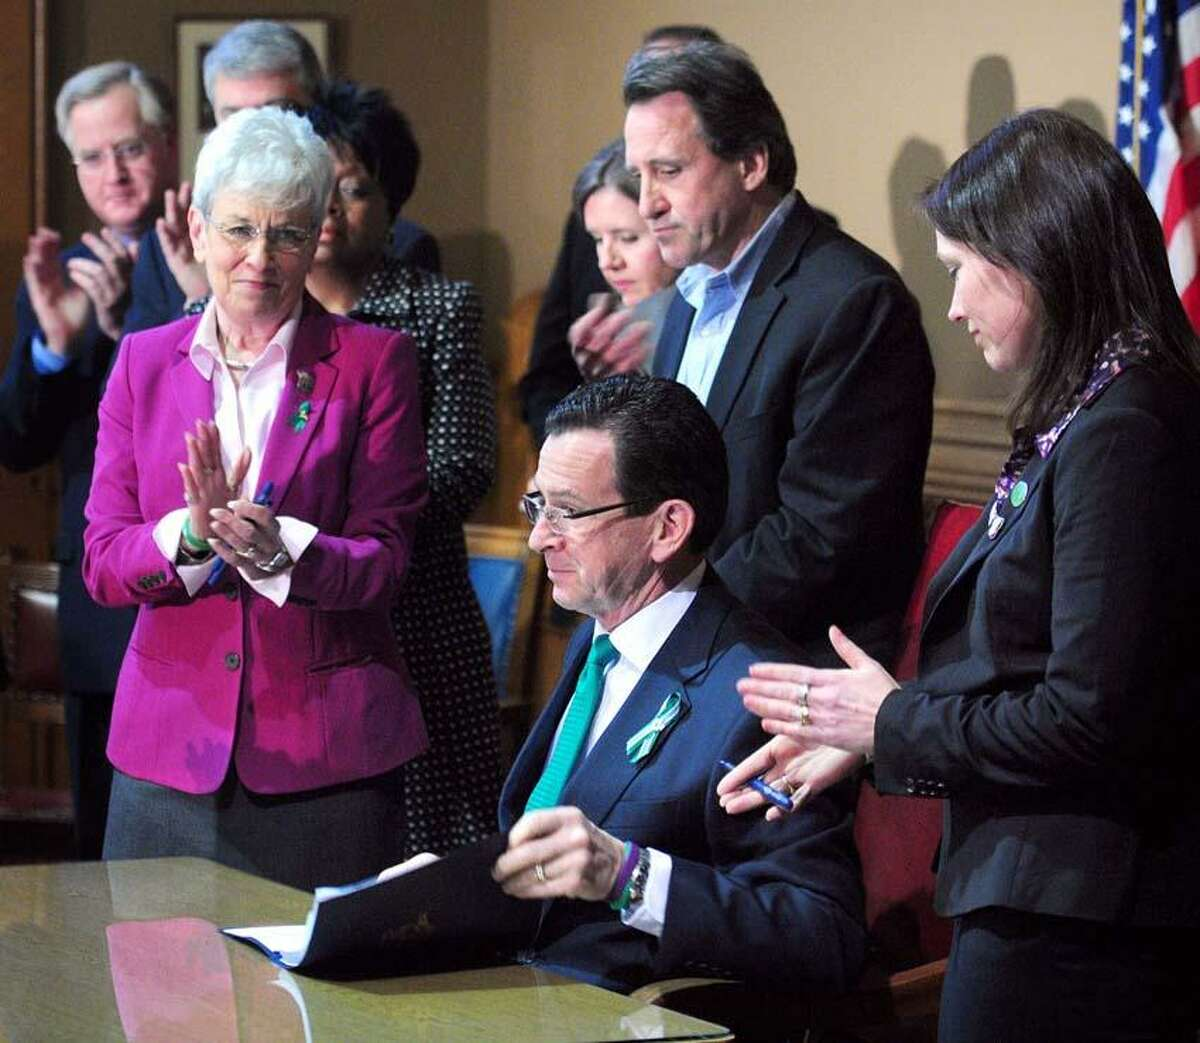 Lt. Governor Nancy Wyman (left), Neil Heslin (top center) and Nicole Hockley (right) applaud as Governor Dannel Malloy (center bottom) completes the signing the Gun Violence Prevention and Child Safety Act at the Capitol in Hartford on 4/4/2013.Photo by Arnold Gold/New Haven Register